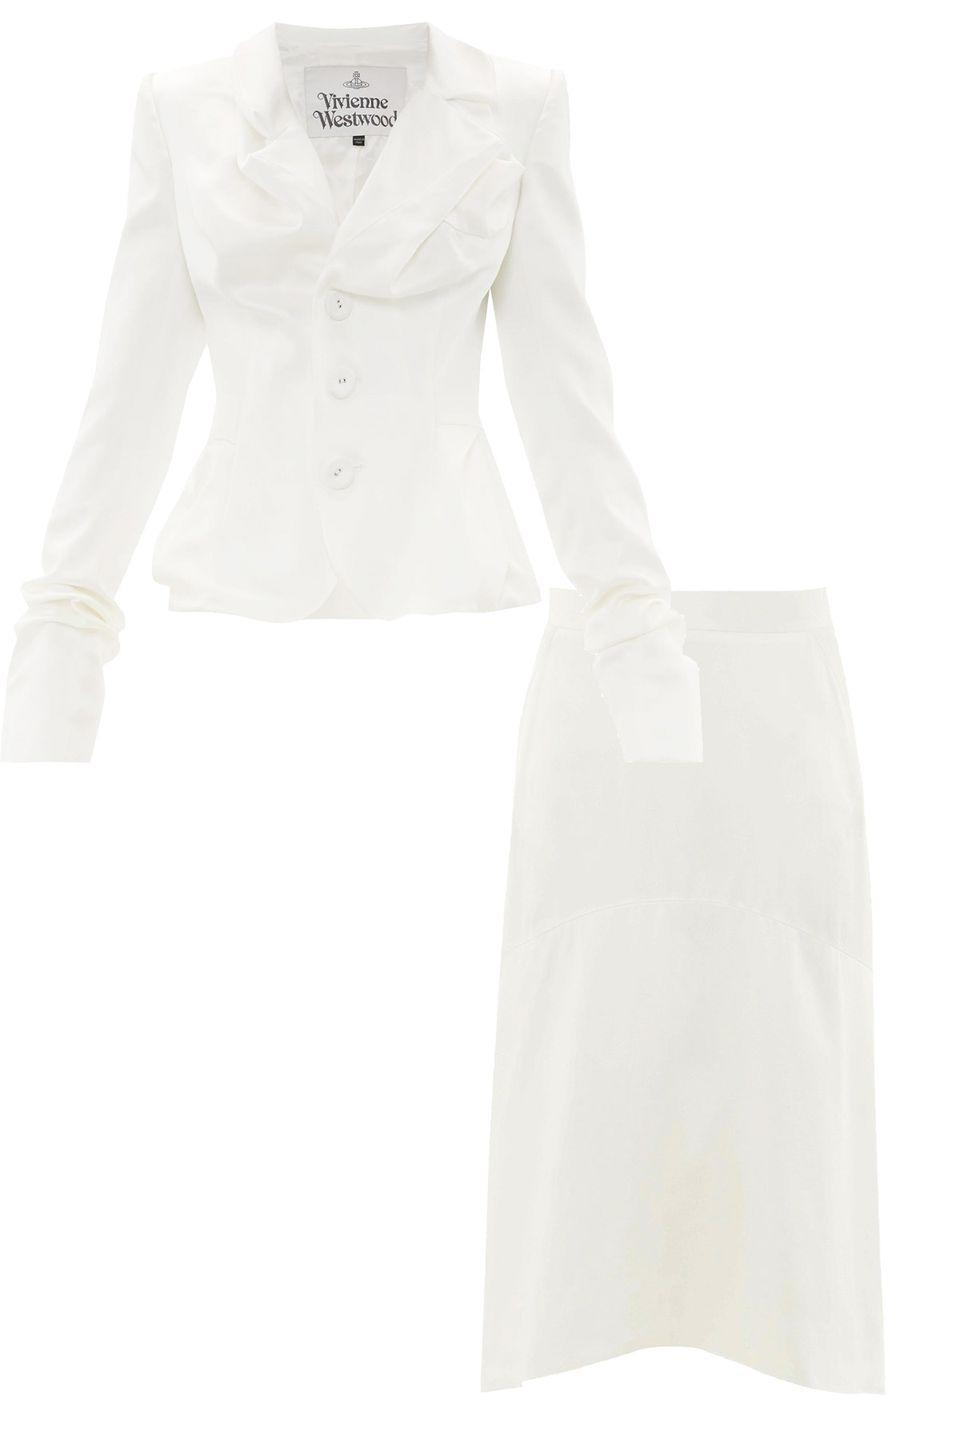 """<p>Courthouse chic with a touch of rebellion? Leave it to Vivienne Westwood with this skirt suit set. Complete the wedding day look with simple jewelry and tousled waves.</p><p><a href=""""https://go.skimresources.com?id=74968X1525087&xs=1&url=https%3A%2F%2Fwww.matchesfashion.com%2Fus%2Fproducts%2FVivienne-Westwood-Draped-single-breasted-satin-jacket-1336645"""" rel=""""nofollow noopener"""" target=""""_blank"""" data-ylk=""""slk:Vivienne Westwood Blazer"""" class=""""link rapid-noclick-resp"""">Vivienne Westwood Blazer<br></a><a href=""""https://go.skimresources.com?id=74968X1525087&xs=1&url=https%3A%2F%2Fwww.matchesfashion.com%2Fus%2Fproducts%2FVivienne-Westwood-Curved-hem-charmeuse-skirt-1336643"""" rel=""""nofollow noopener"""" target=""""_blank"""" data-ylk=""""slk:Vivienne Westwood Skirt"""" class=""""link rapid-noclick-resp"""">Vivienne Westwood Skirt</a></p>"""